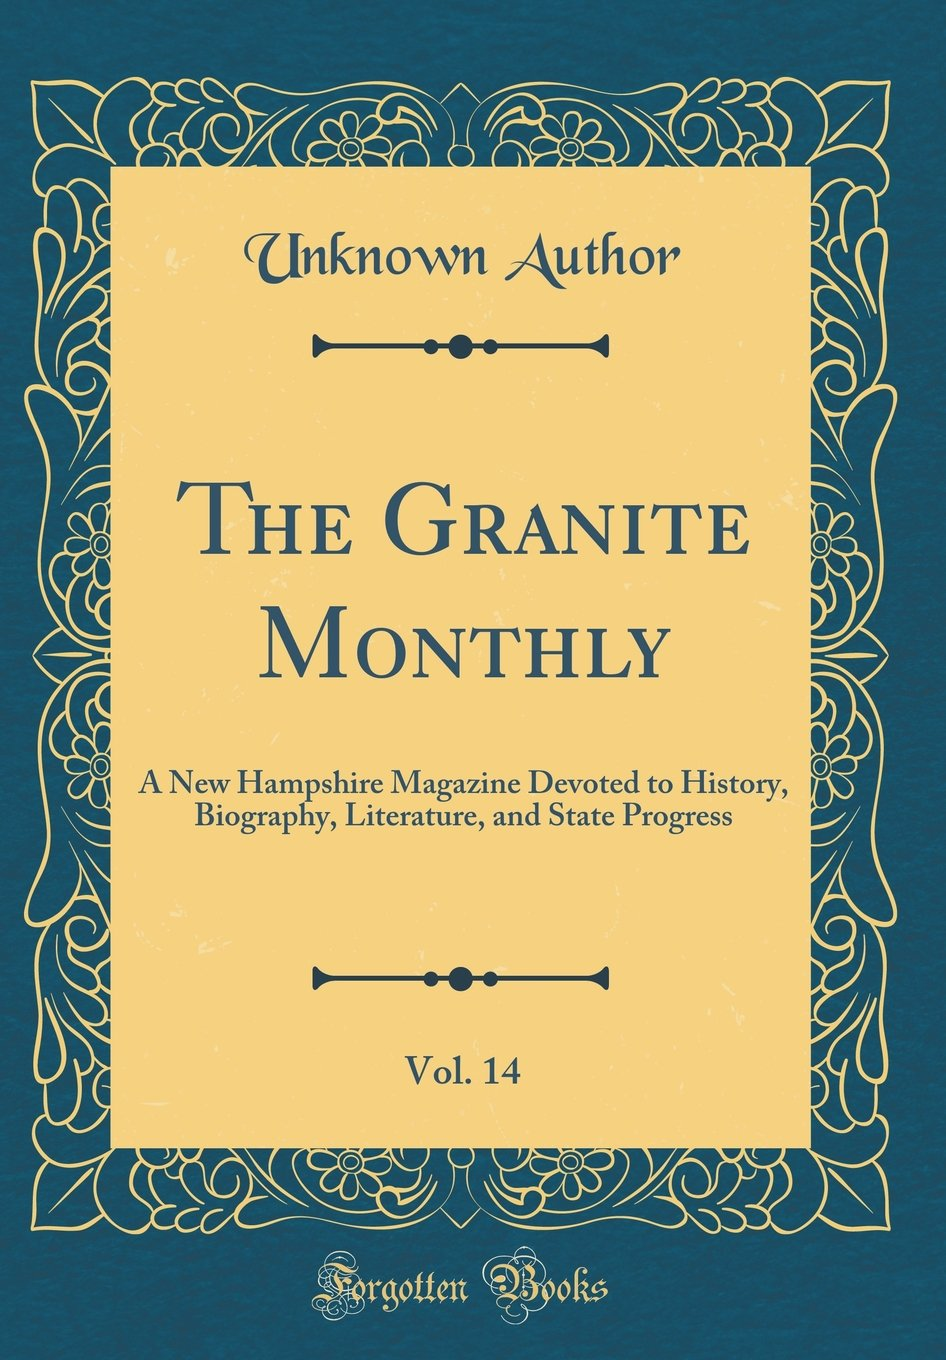 The Granite Monthly, Vol. 14: A New Hampshire Magazine Devoted to History, Biography, Literature, and State Progress (Classic Reprint) pdf